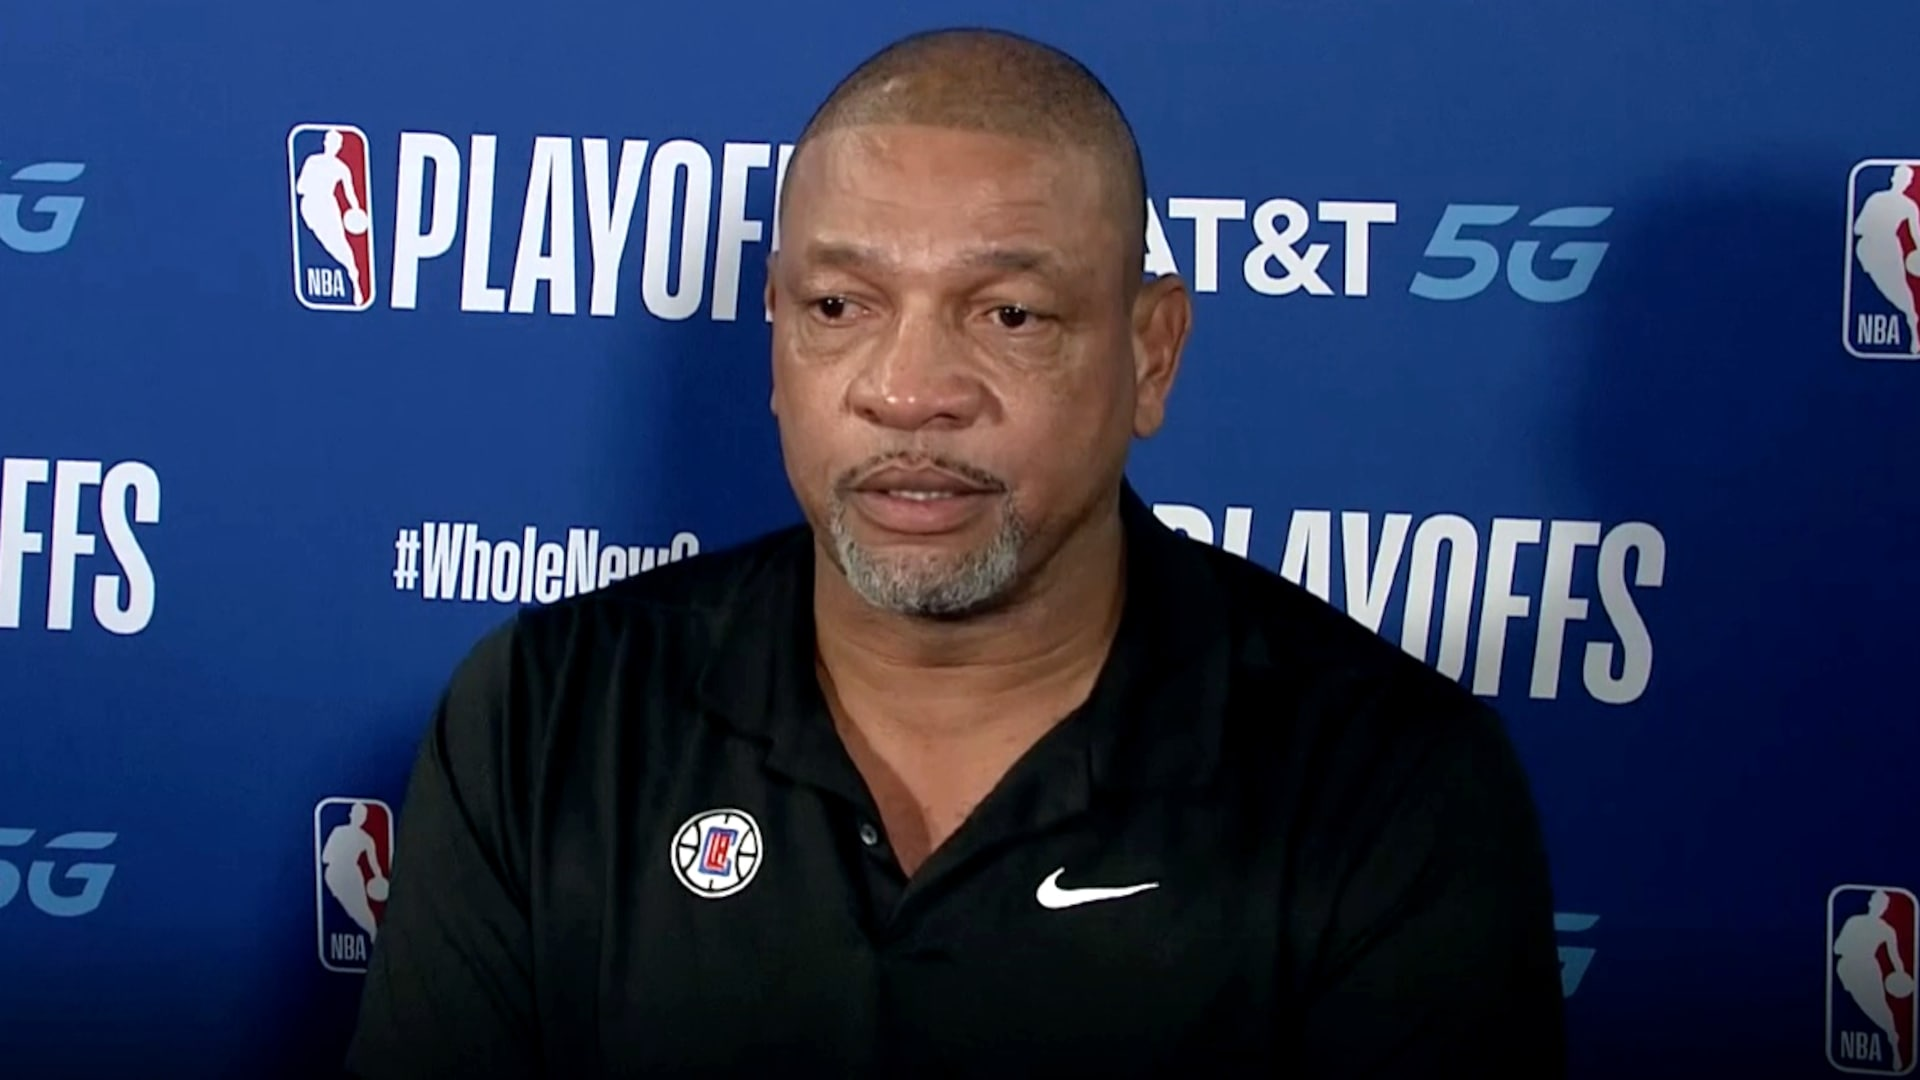 Doc Rivers: No magical Game 7 speech planned or needed for LA Clippers